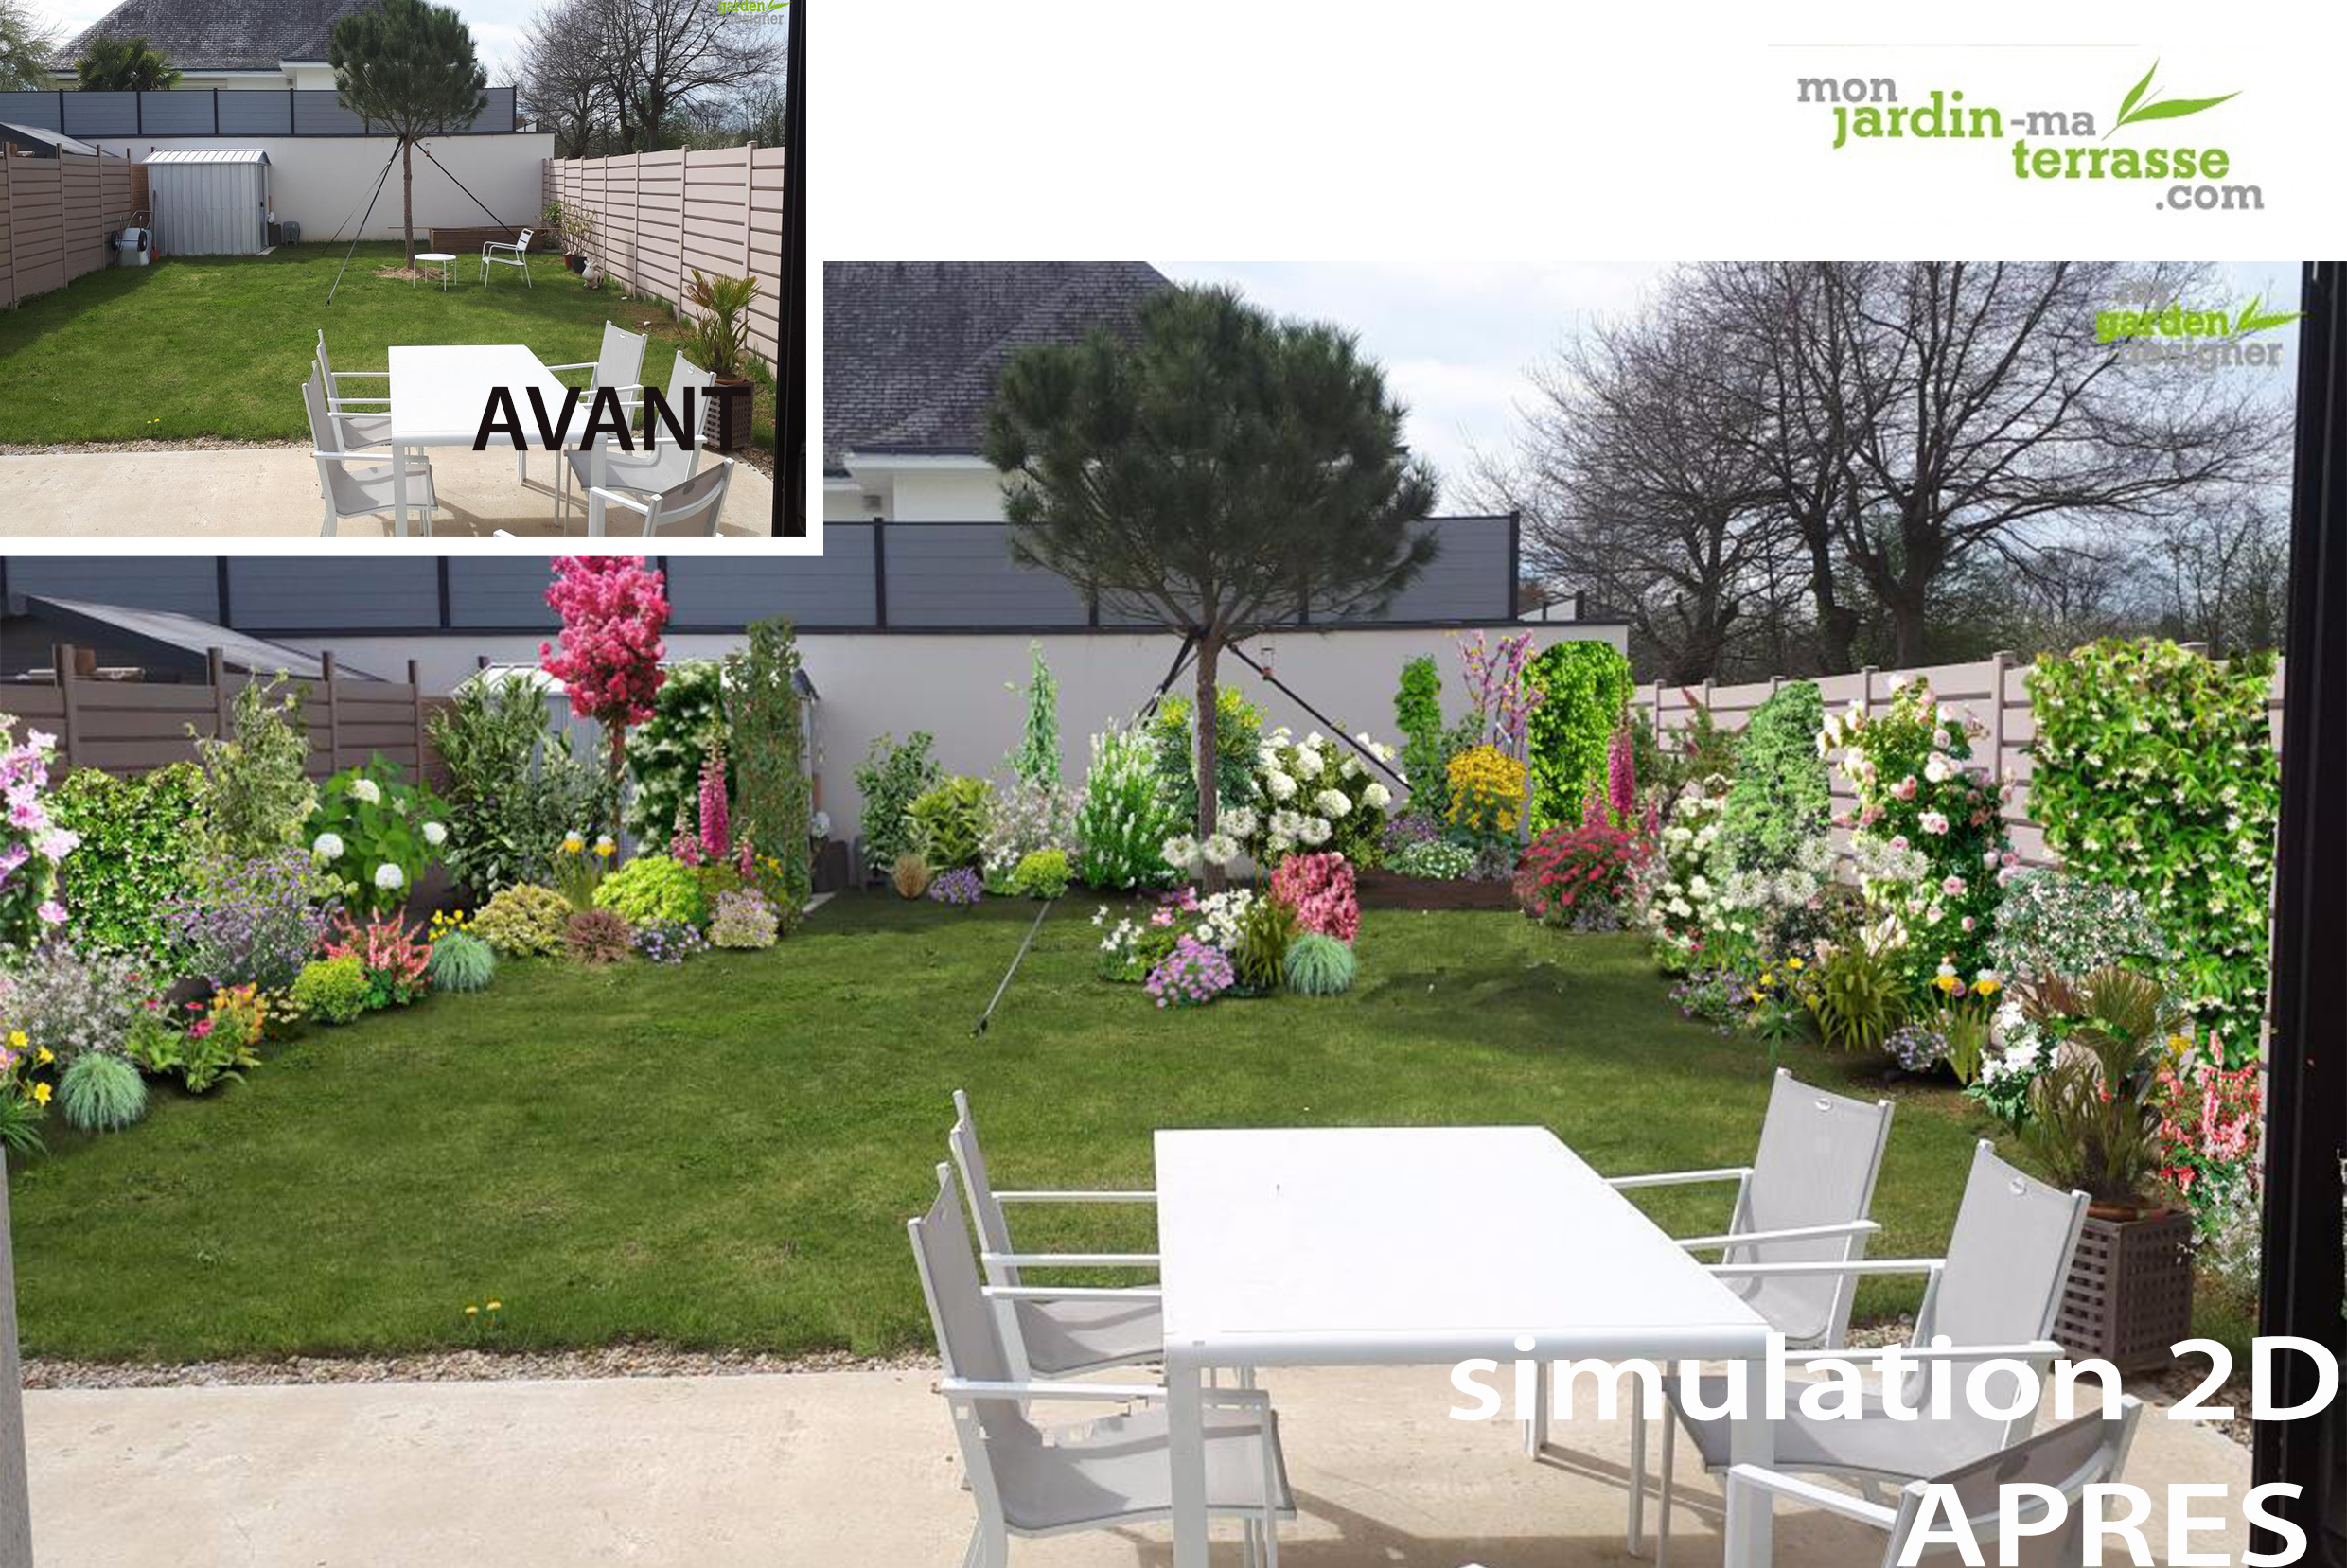 Comment am nager un petit jardin rectangulaire monjardin for Ammenagement jardin